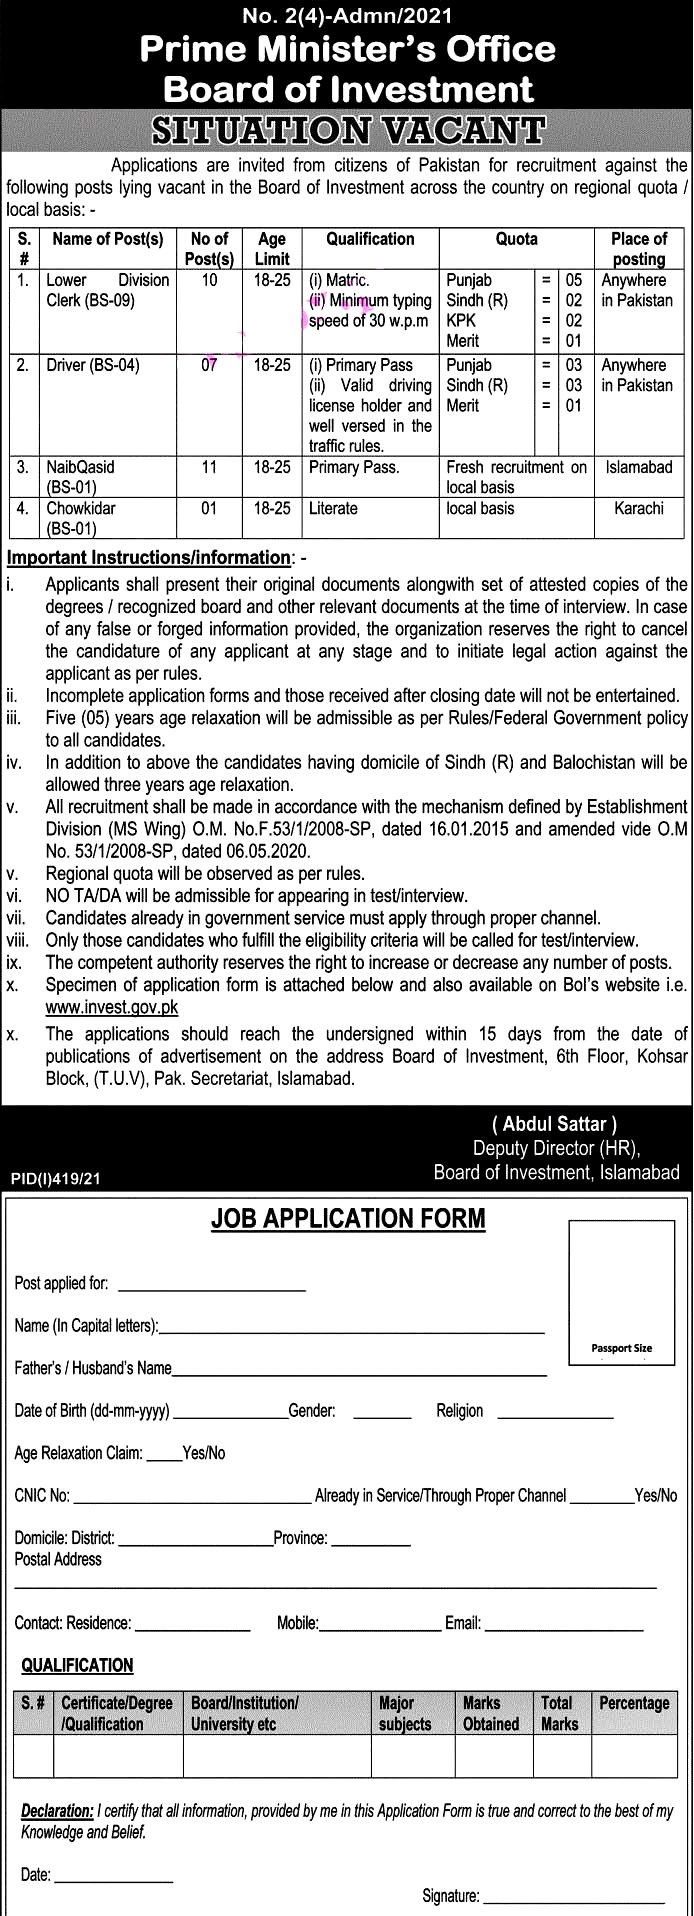 Latest Jobs in Primary Ministry Office Board of Investment 2021